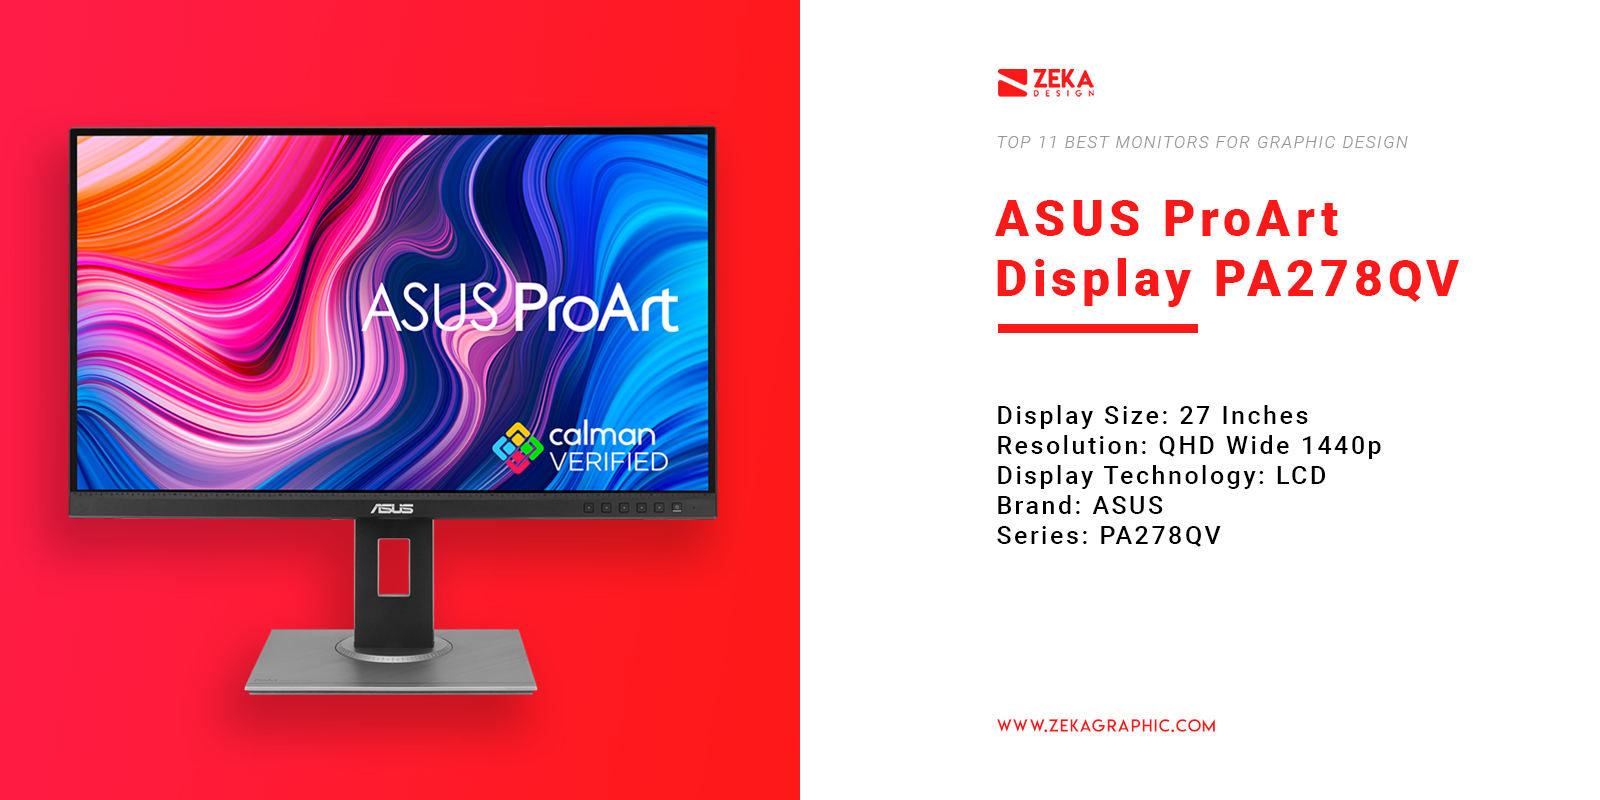 ASUS ProArt Display PA278QV Monitor for Graphic Design